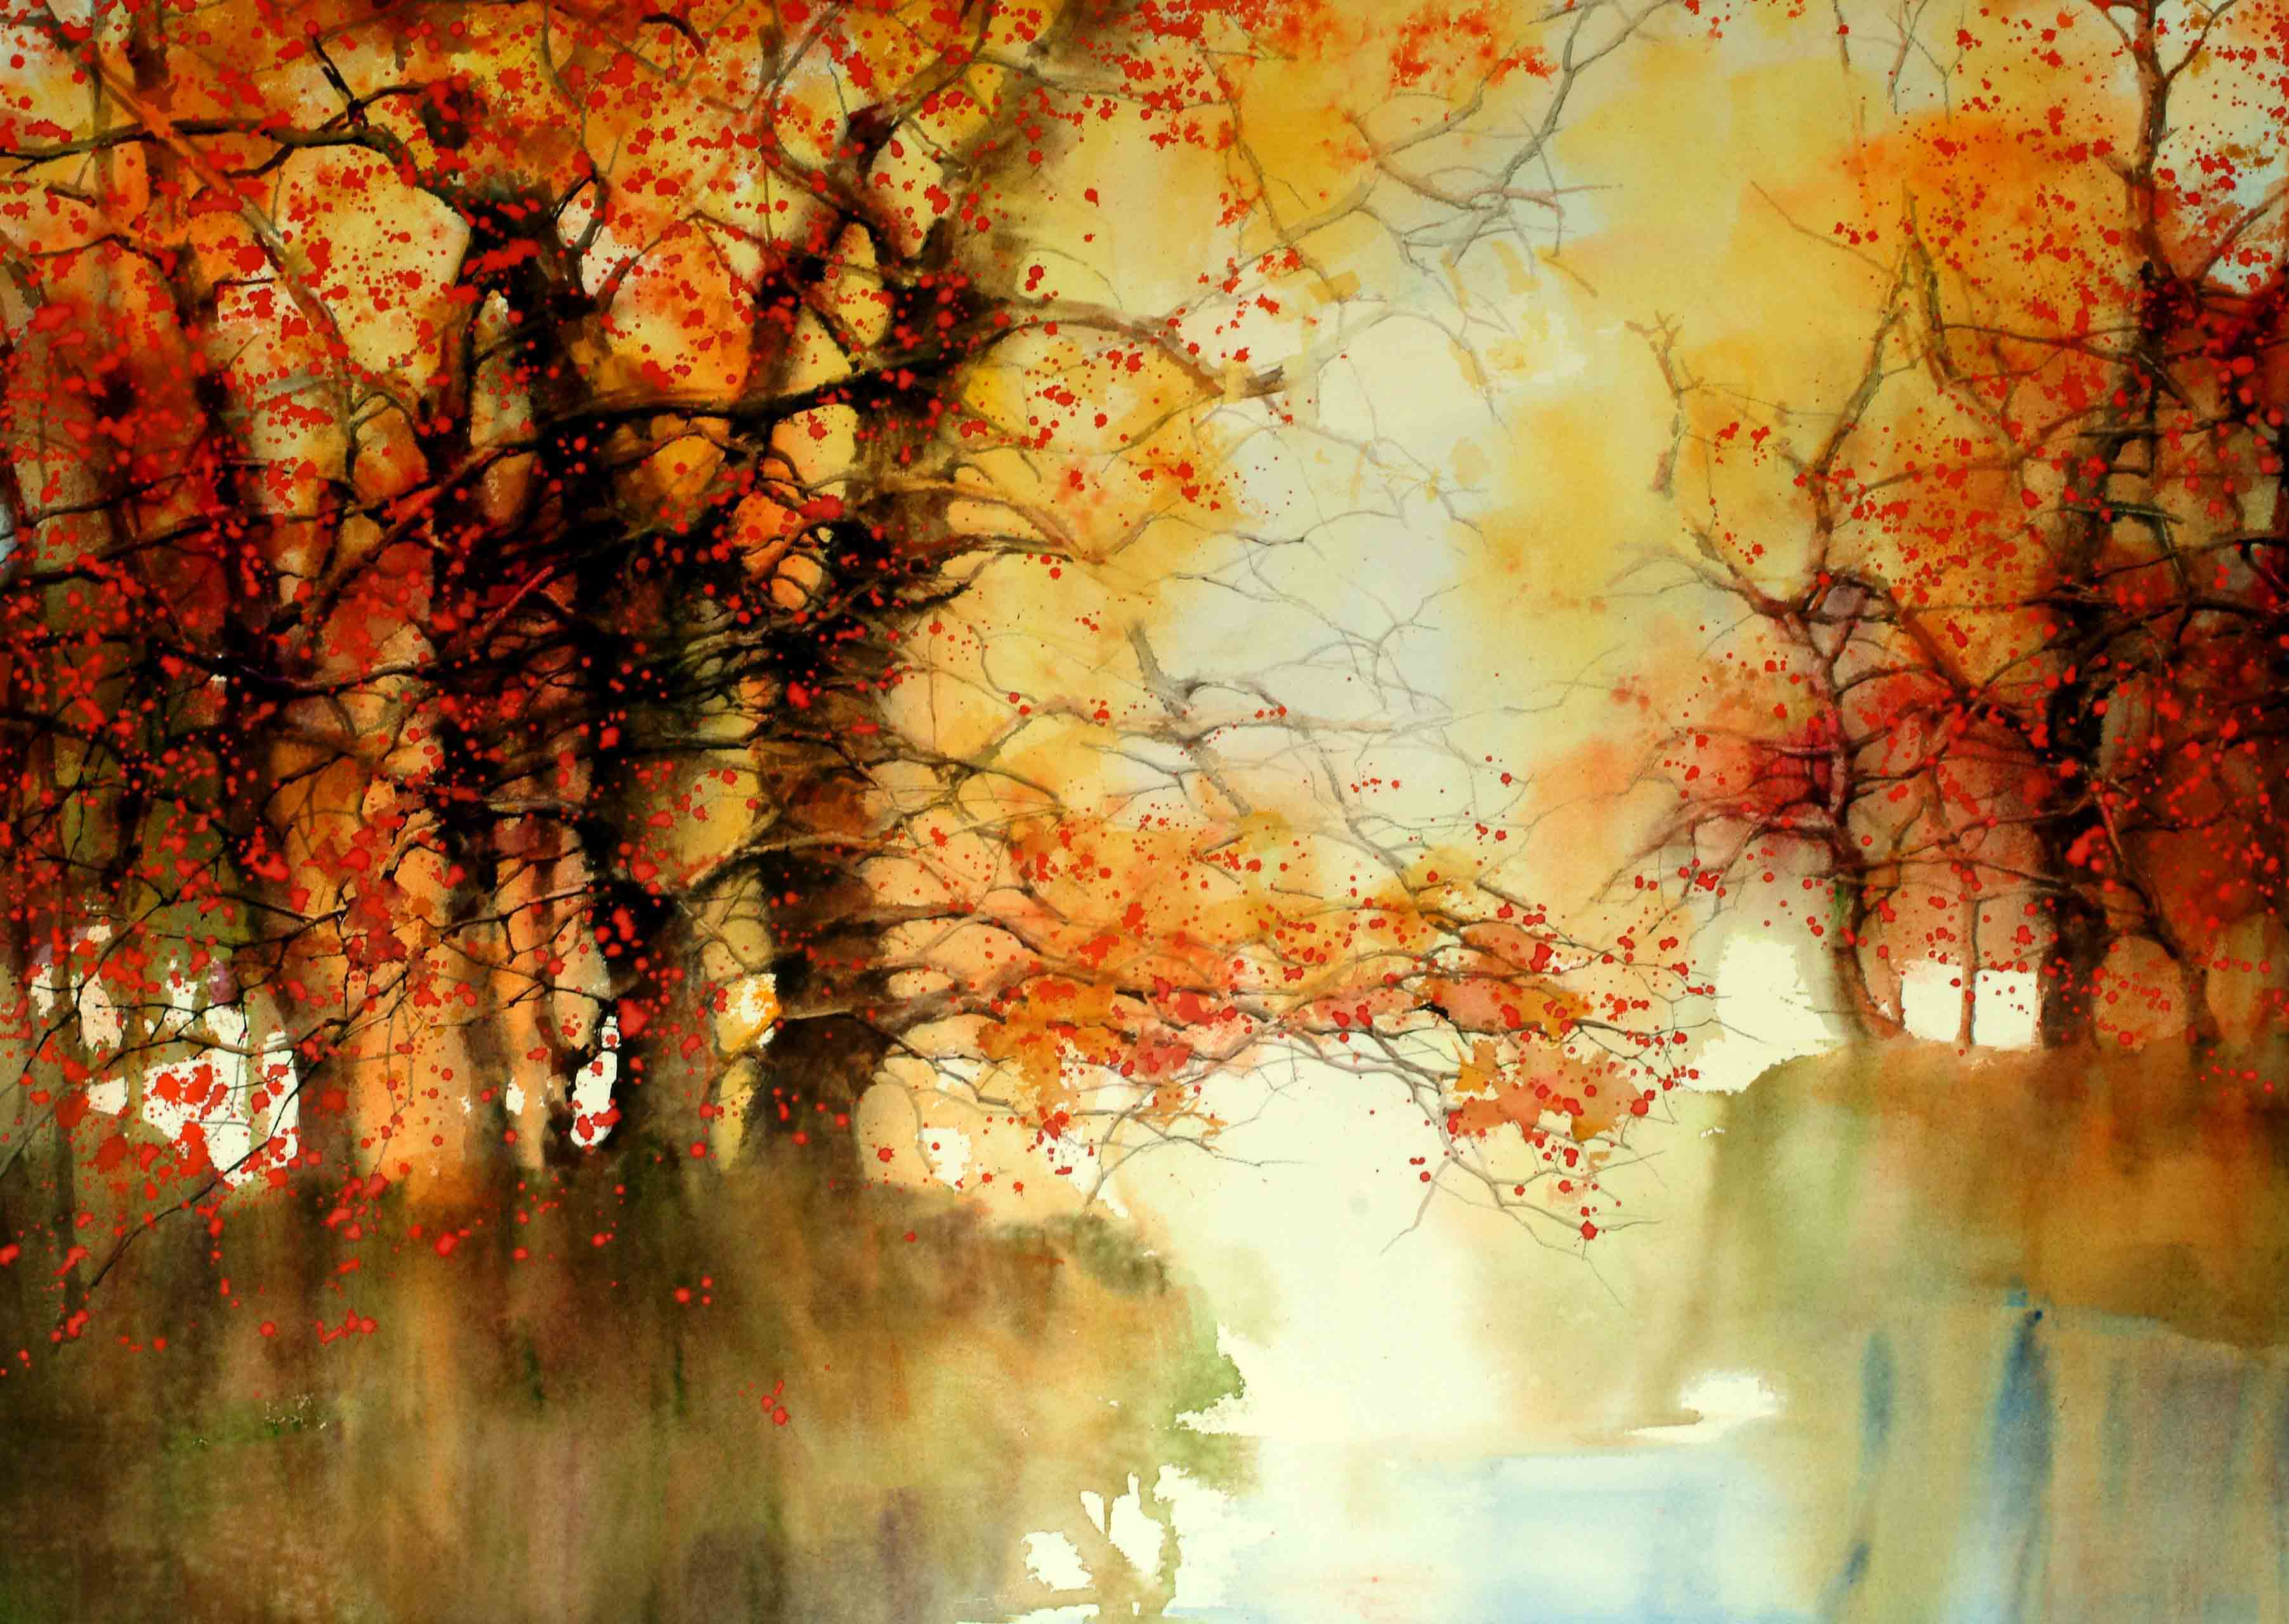 watercolor painting by Z.L. Feng